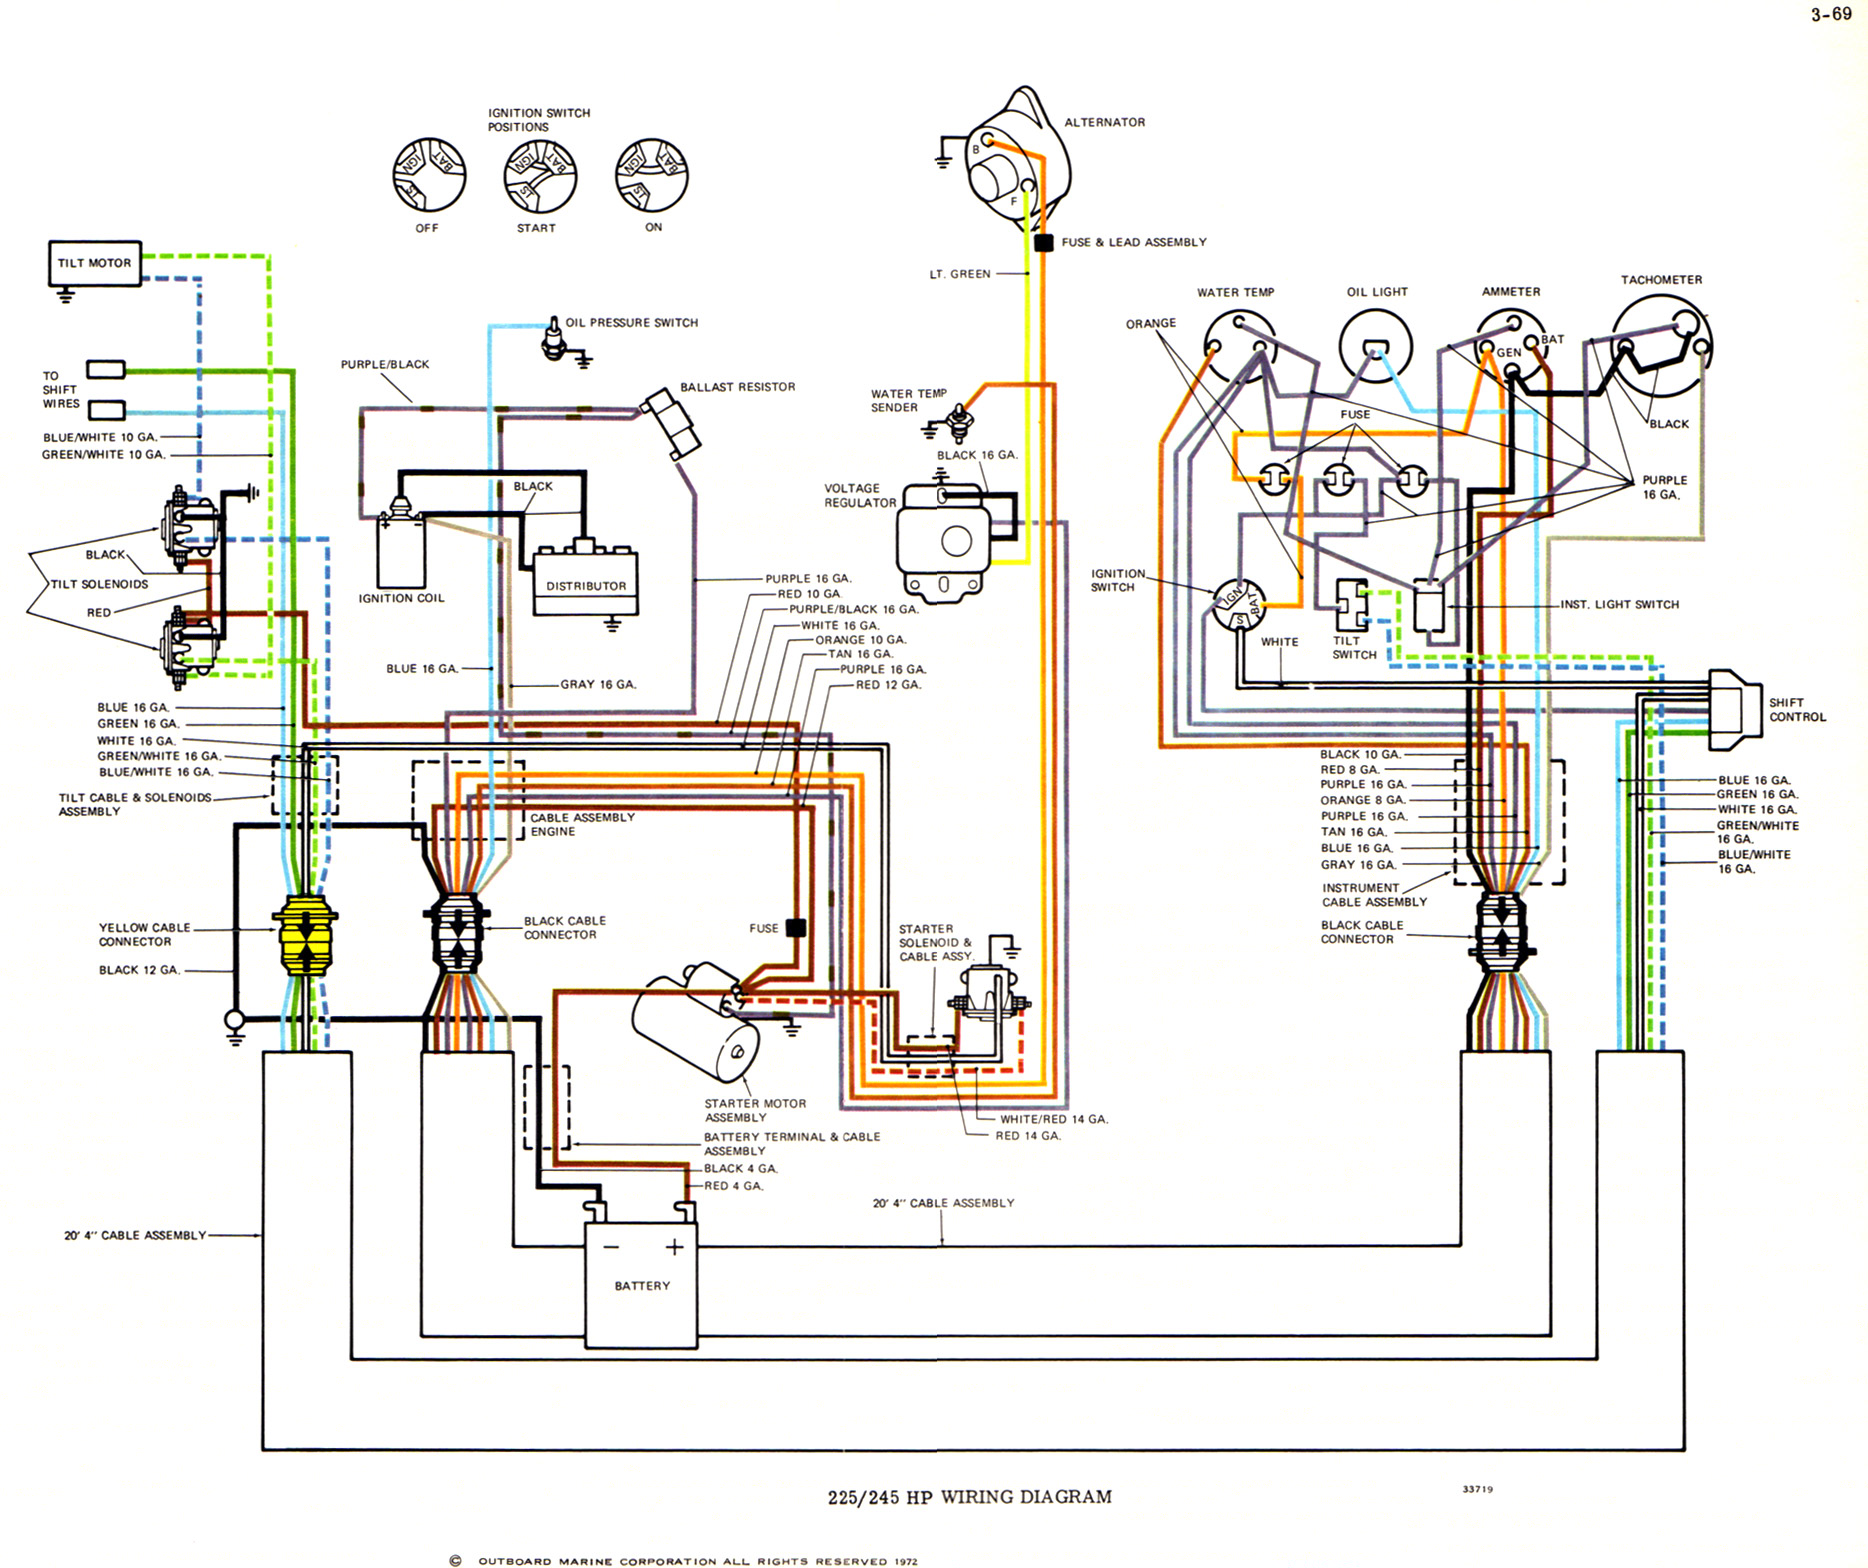 73_OMC_V8_all_big omc boat technical info small boat wiring diagram at crackthecode.co